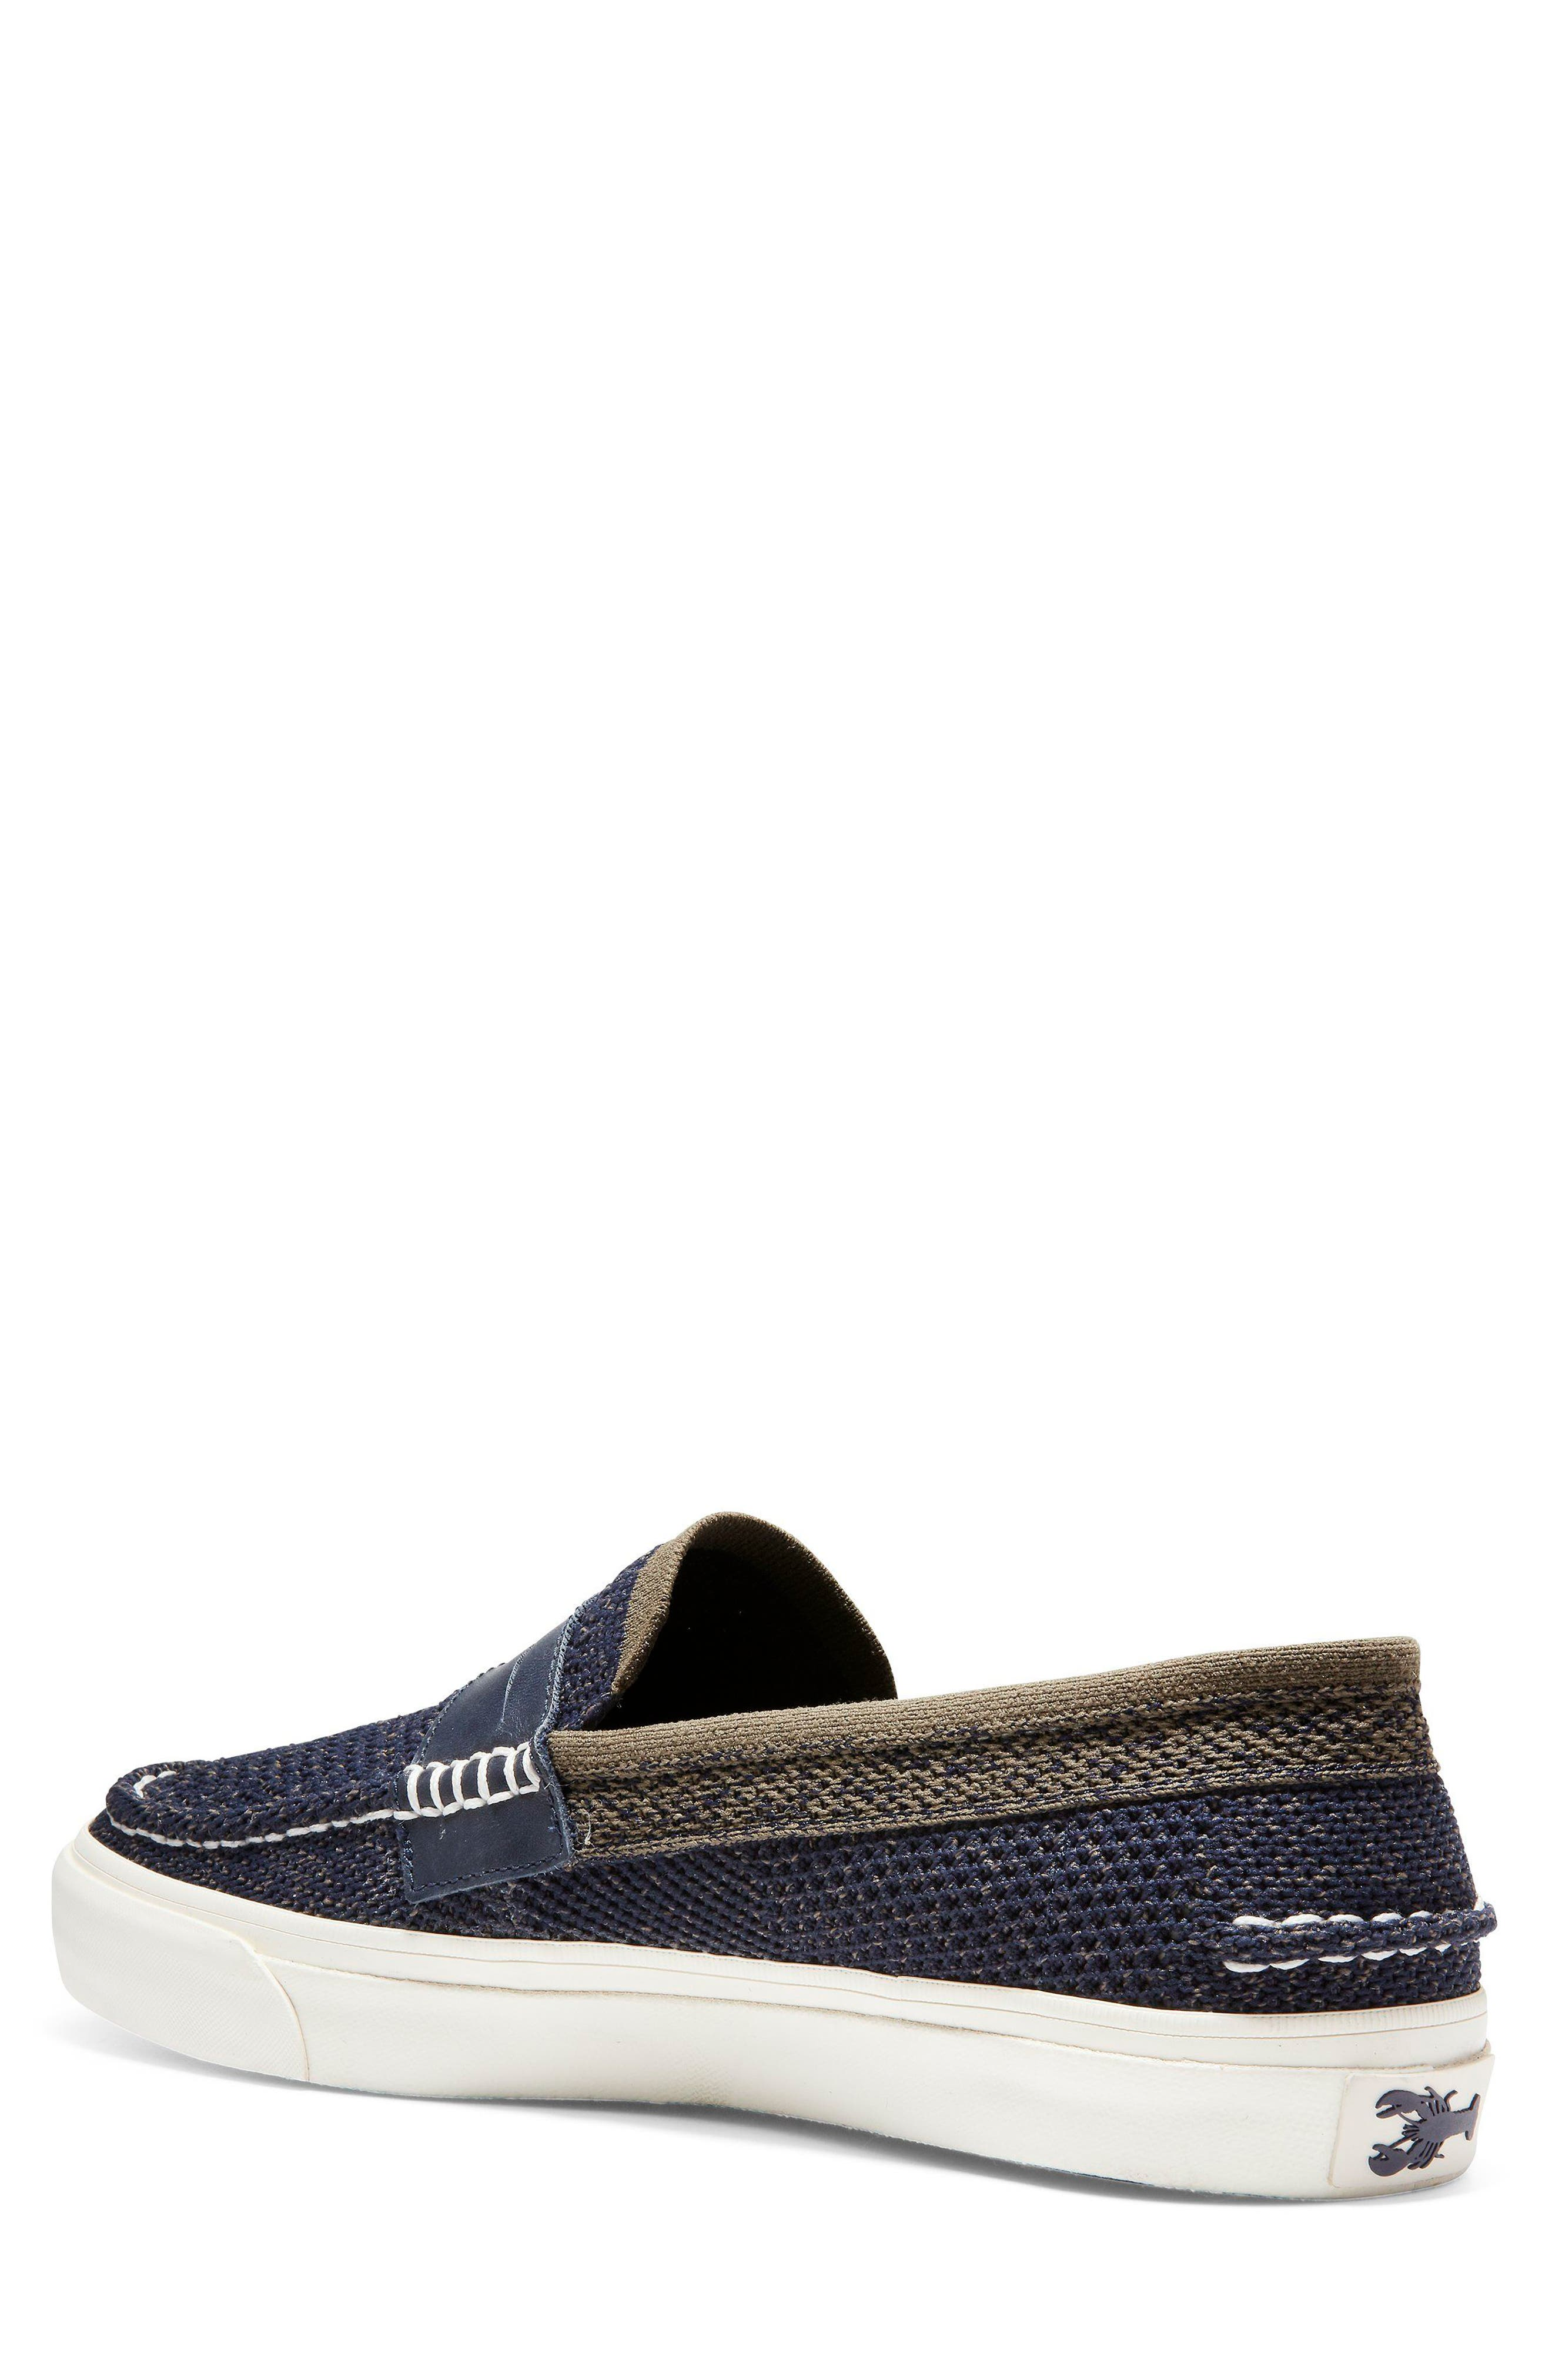 Pinch Stitch LX Stitchlite<sup>™</sup> Penny Loafer,                             Alternate thumbnail 2, color,                             NAVY/ MOREL